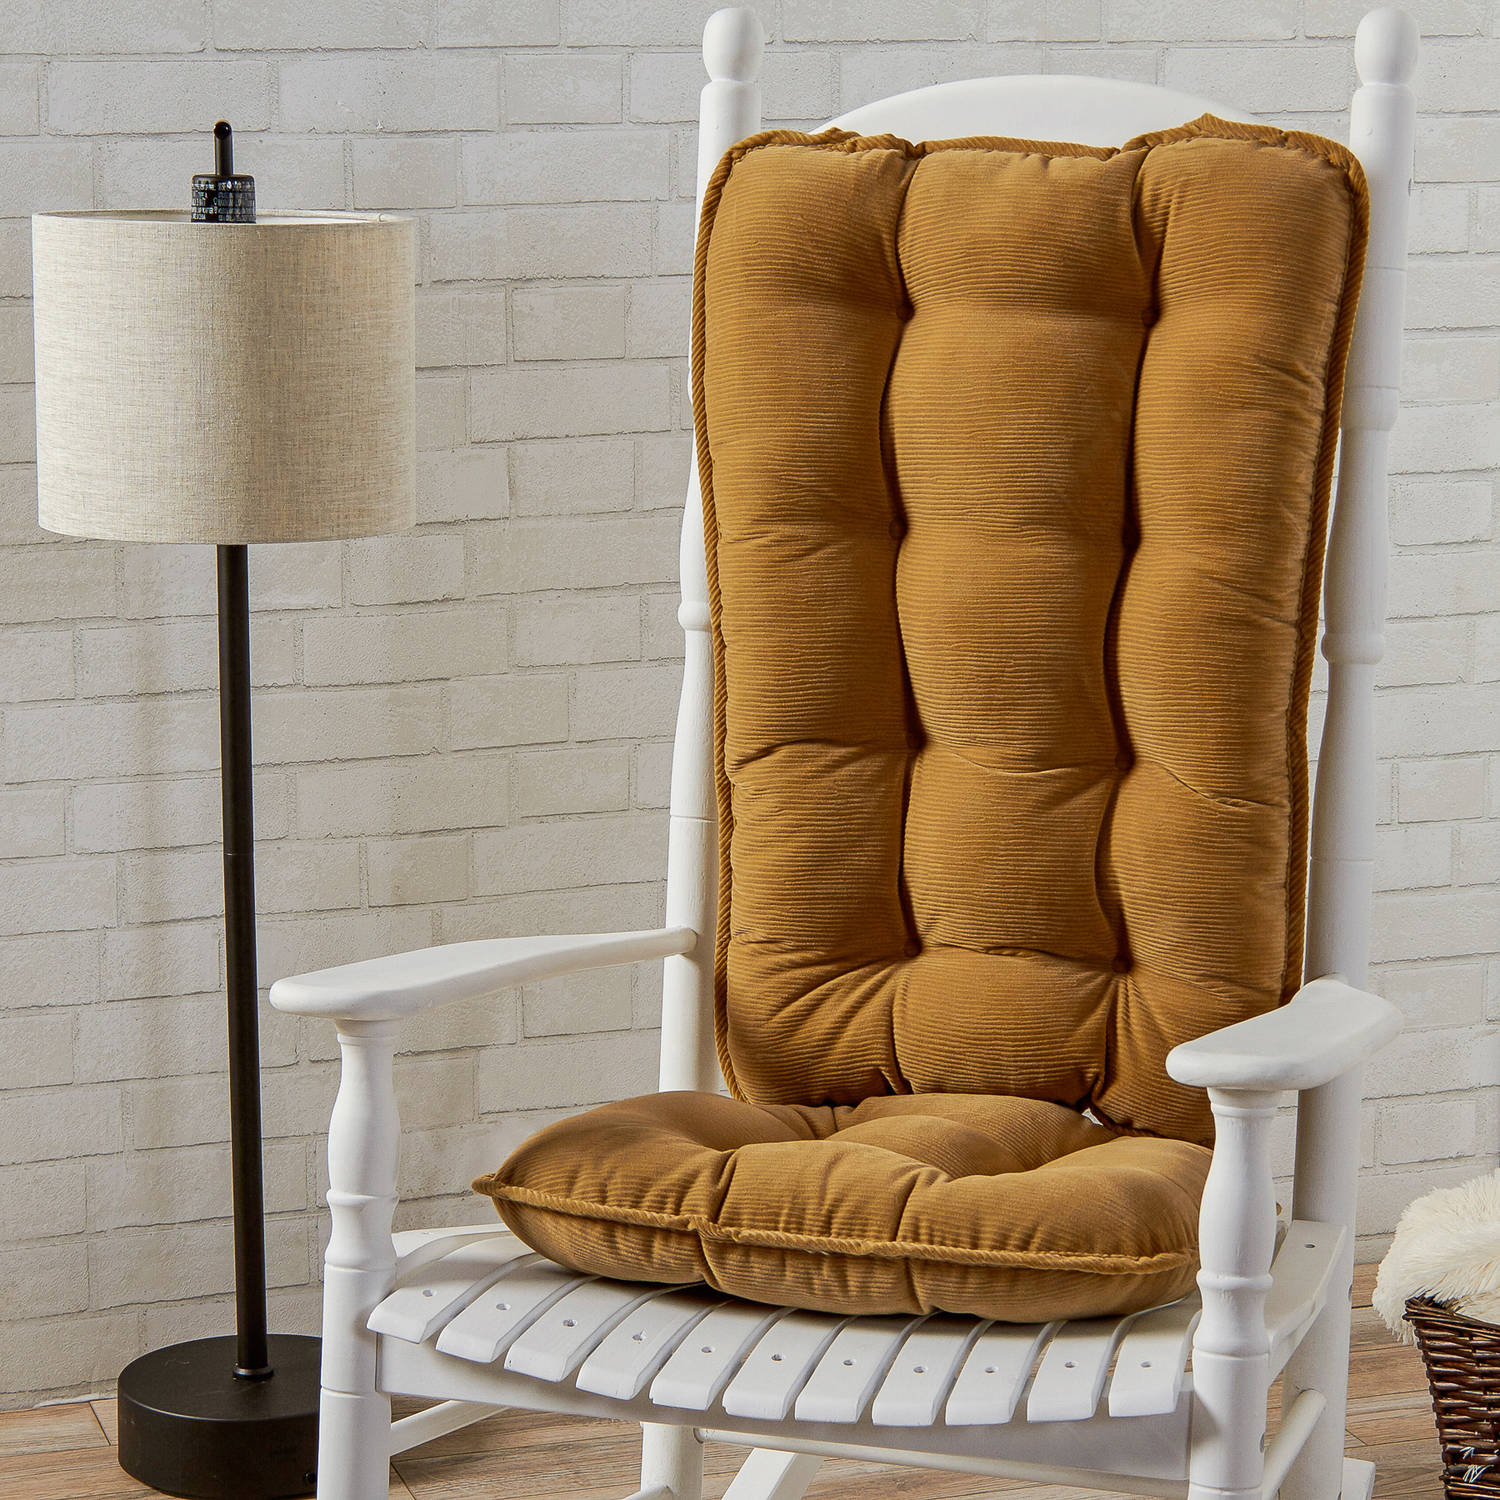 Rocker Cushions Indoor | Rocking Chair Cushion | Where to Buy Rocking Chair Cushions